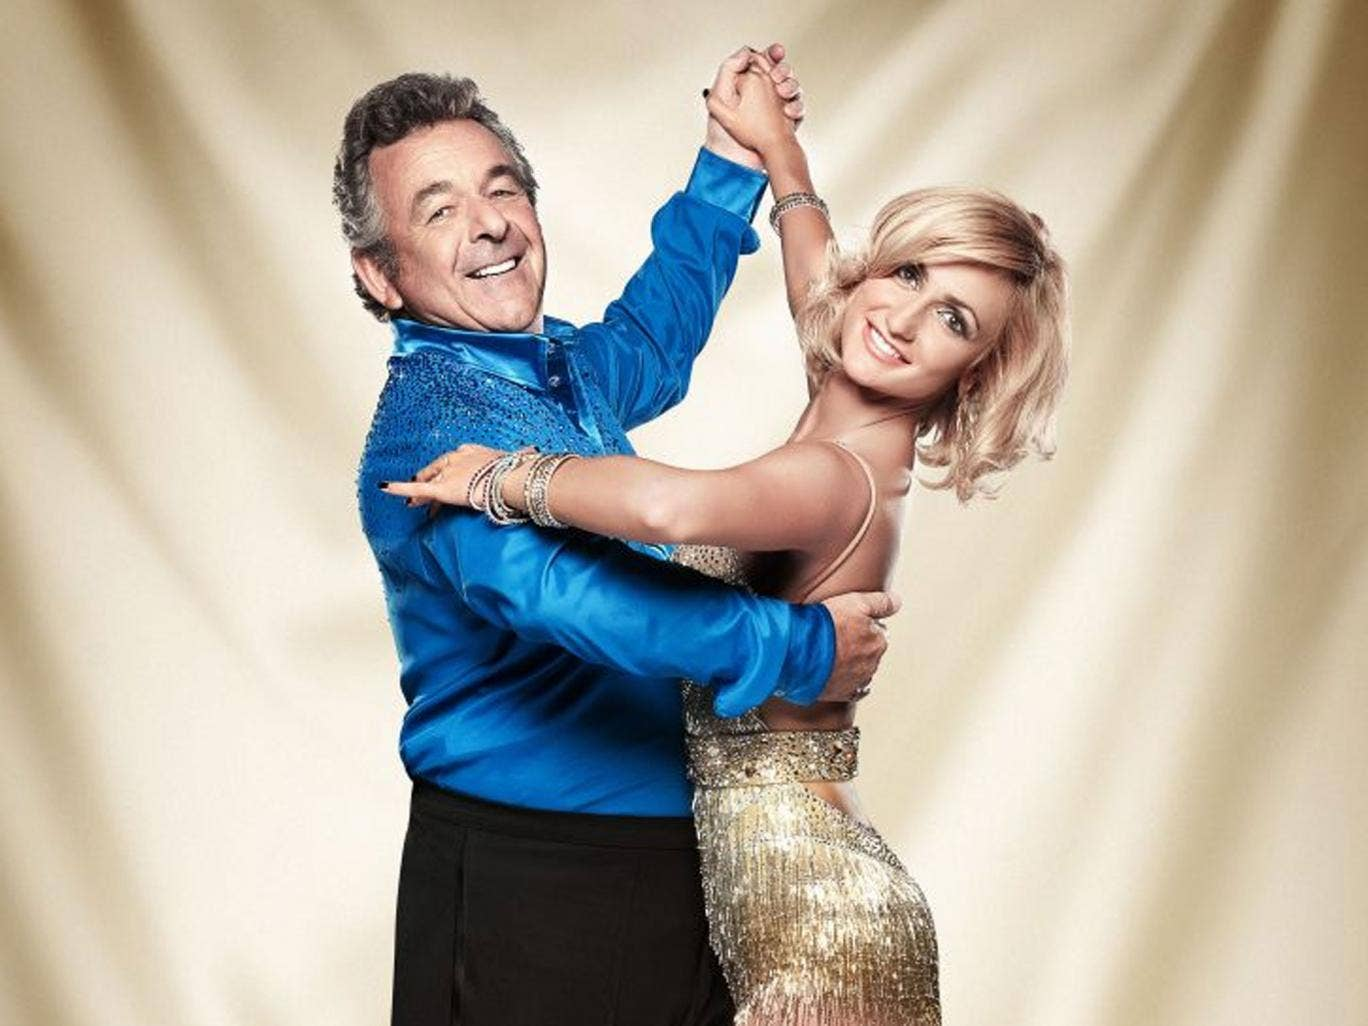 Tony Jacklin, the 69-year-old golfer, will take part in this years Strictly Come Dancing